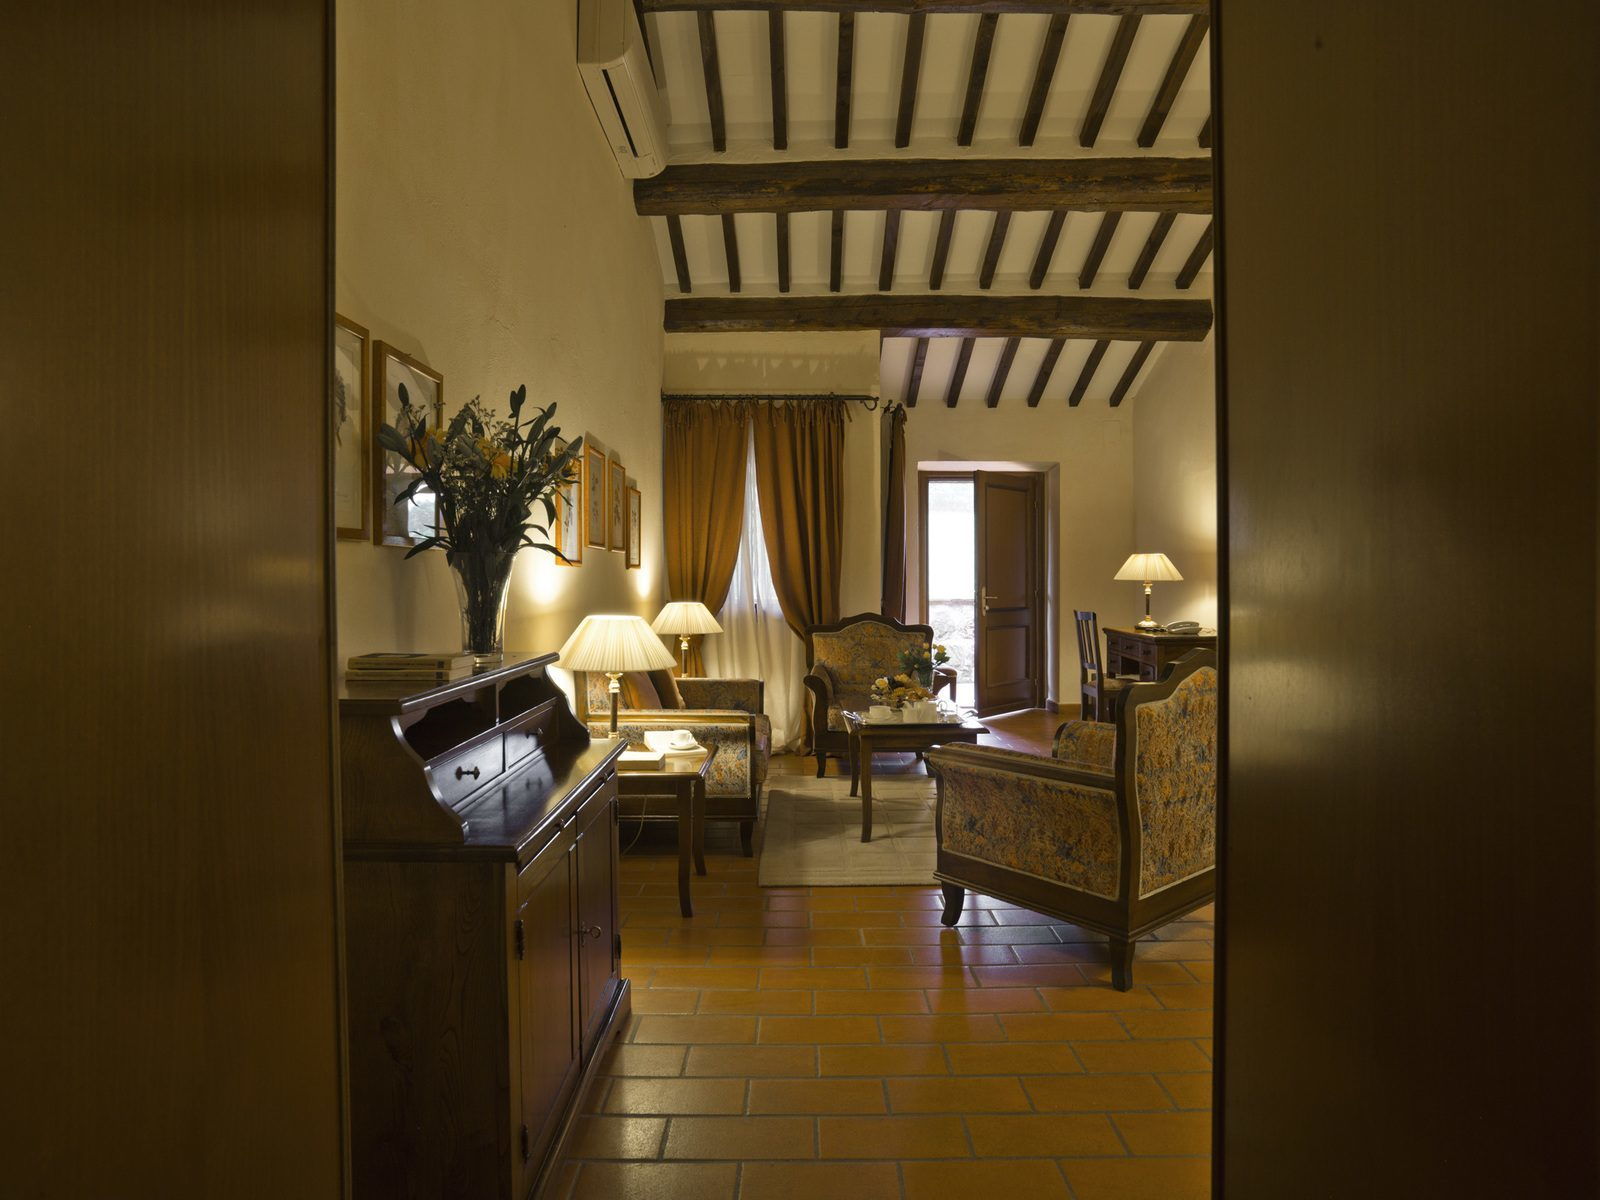 vms-room-family-suite-villa-3